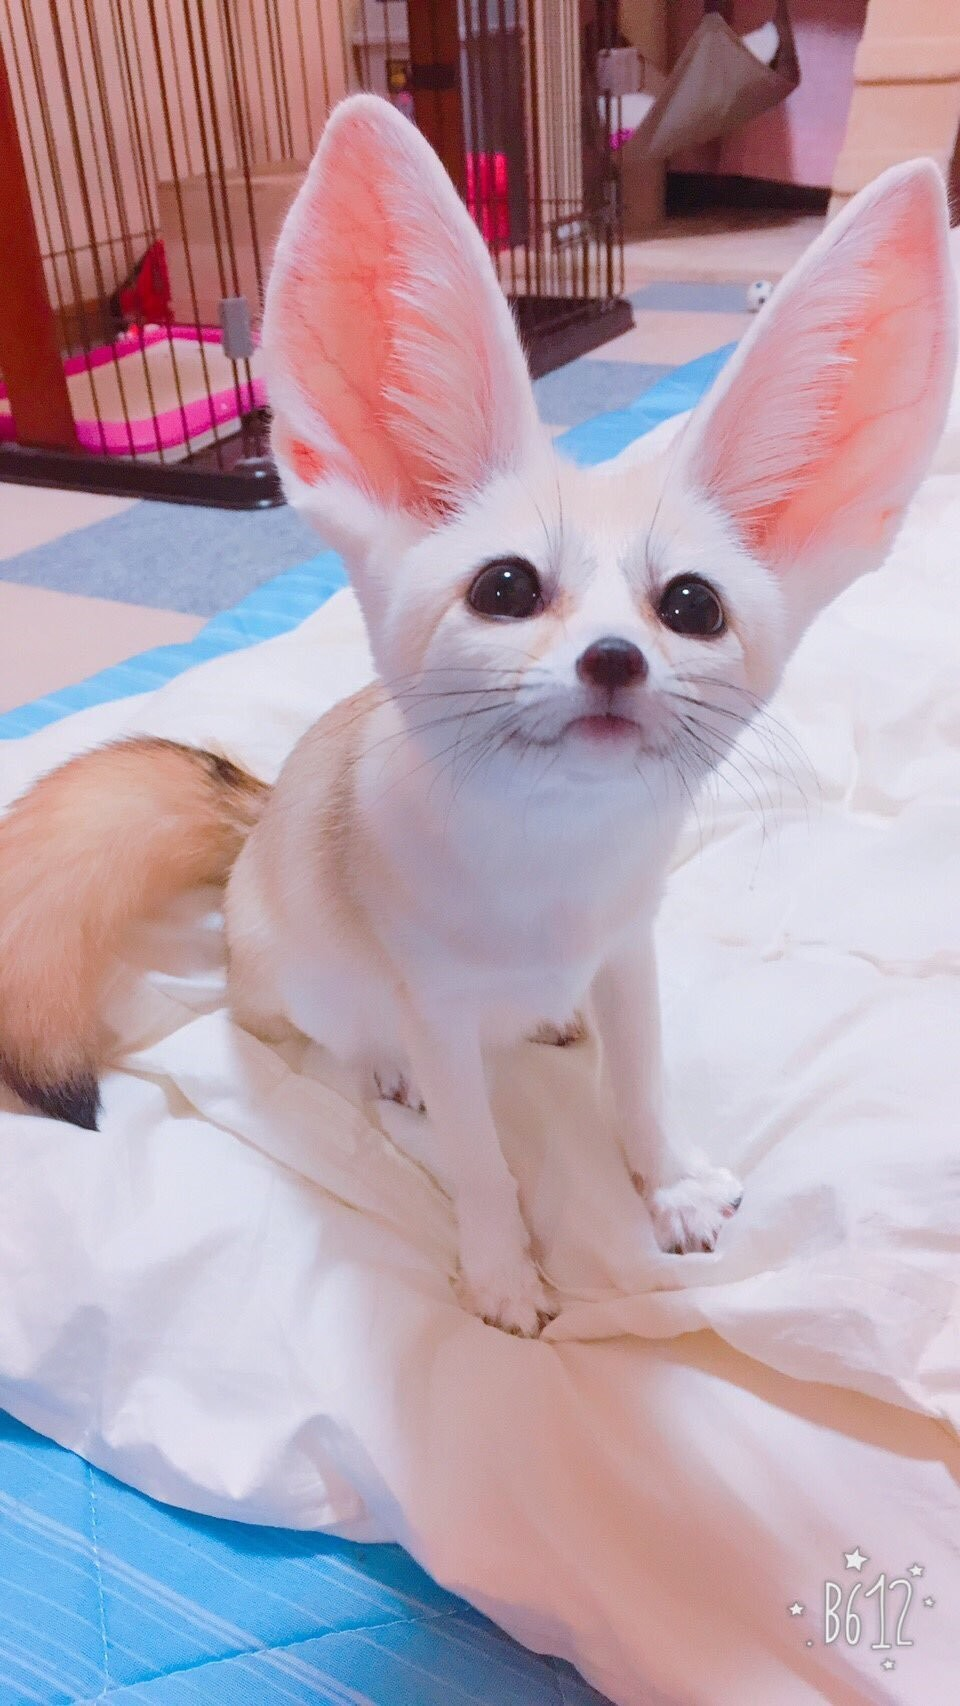 A fennec looking up at you hopefully